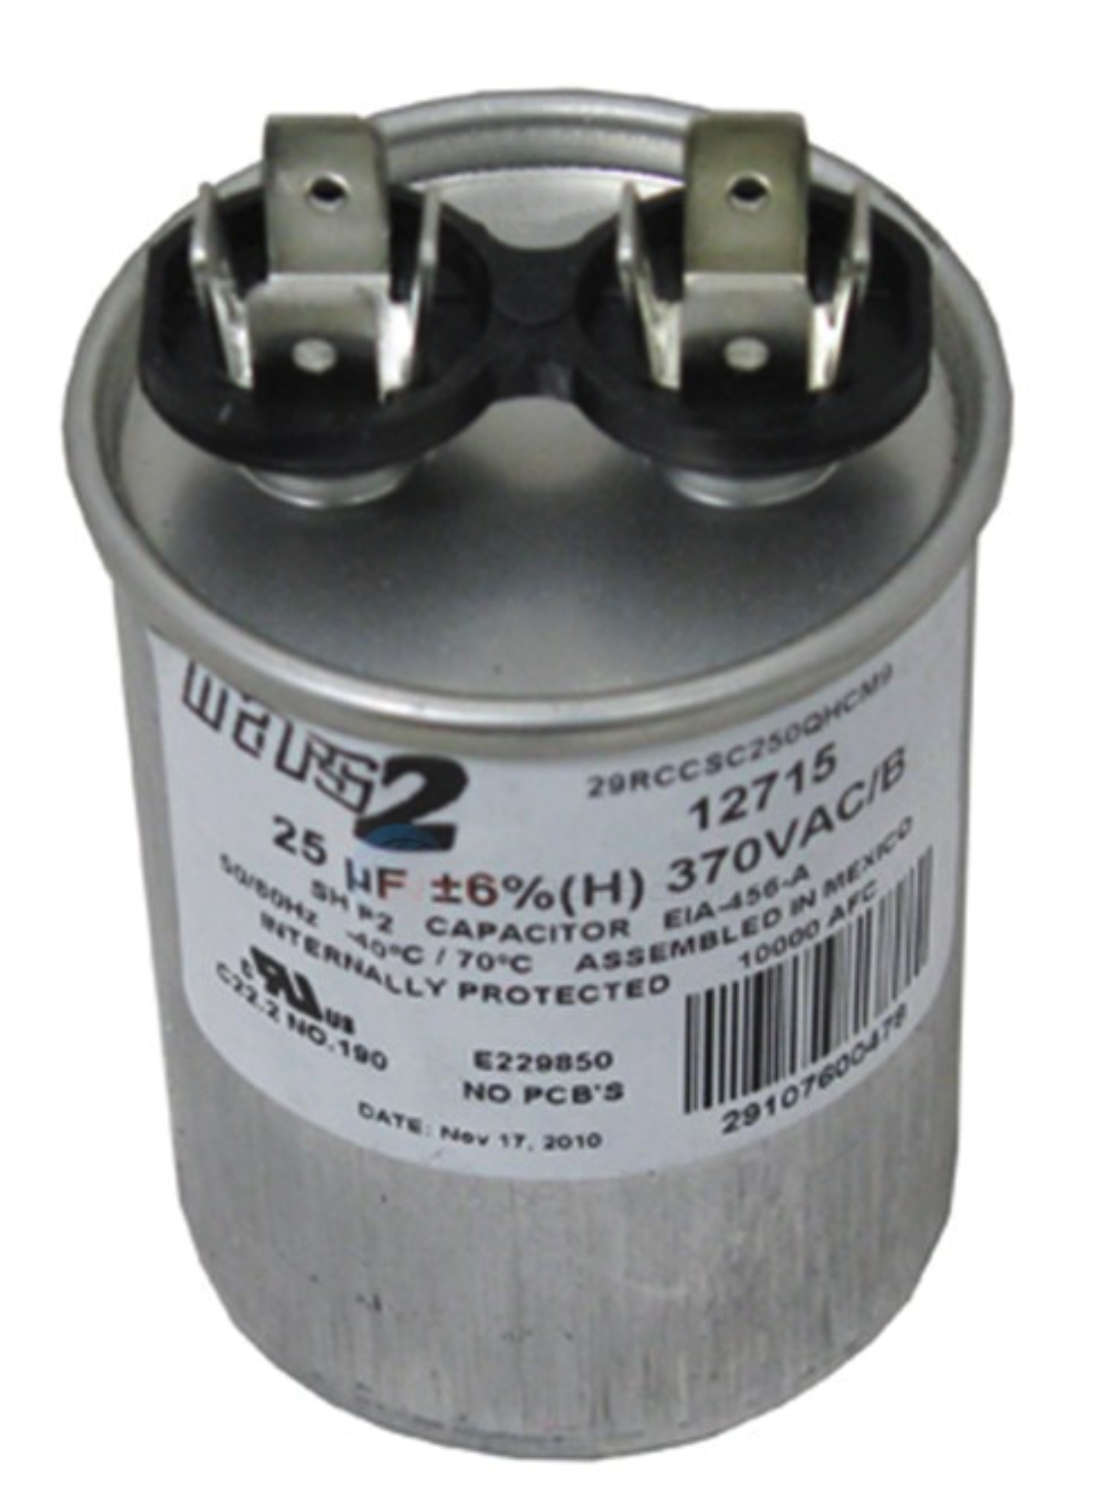 Electric Motor Starting Capacitor Selection House Wiring Cable Ao Smith Or Other Replacement 25mfd 370v 628318 307 At Inspectapedia